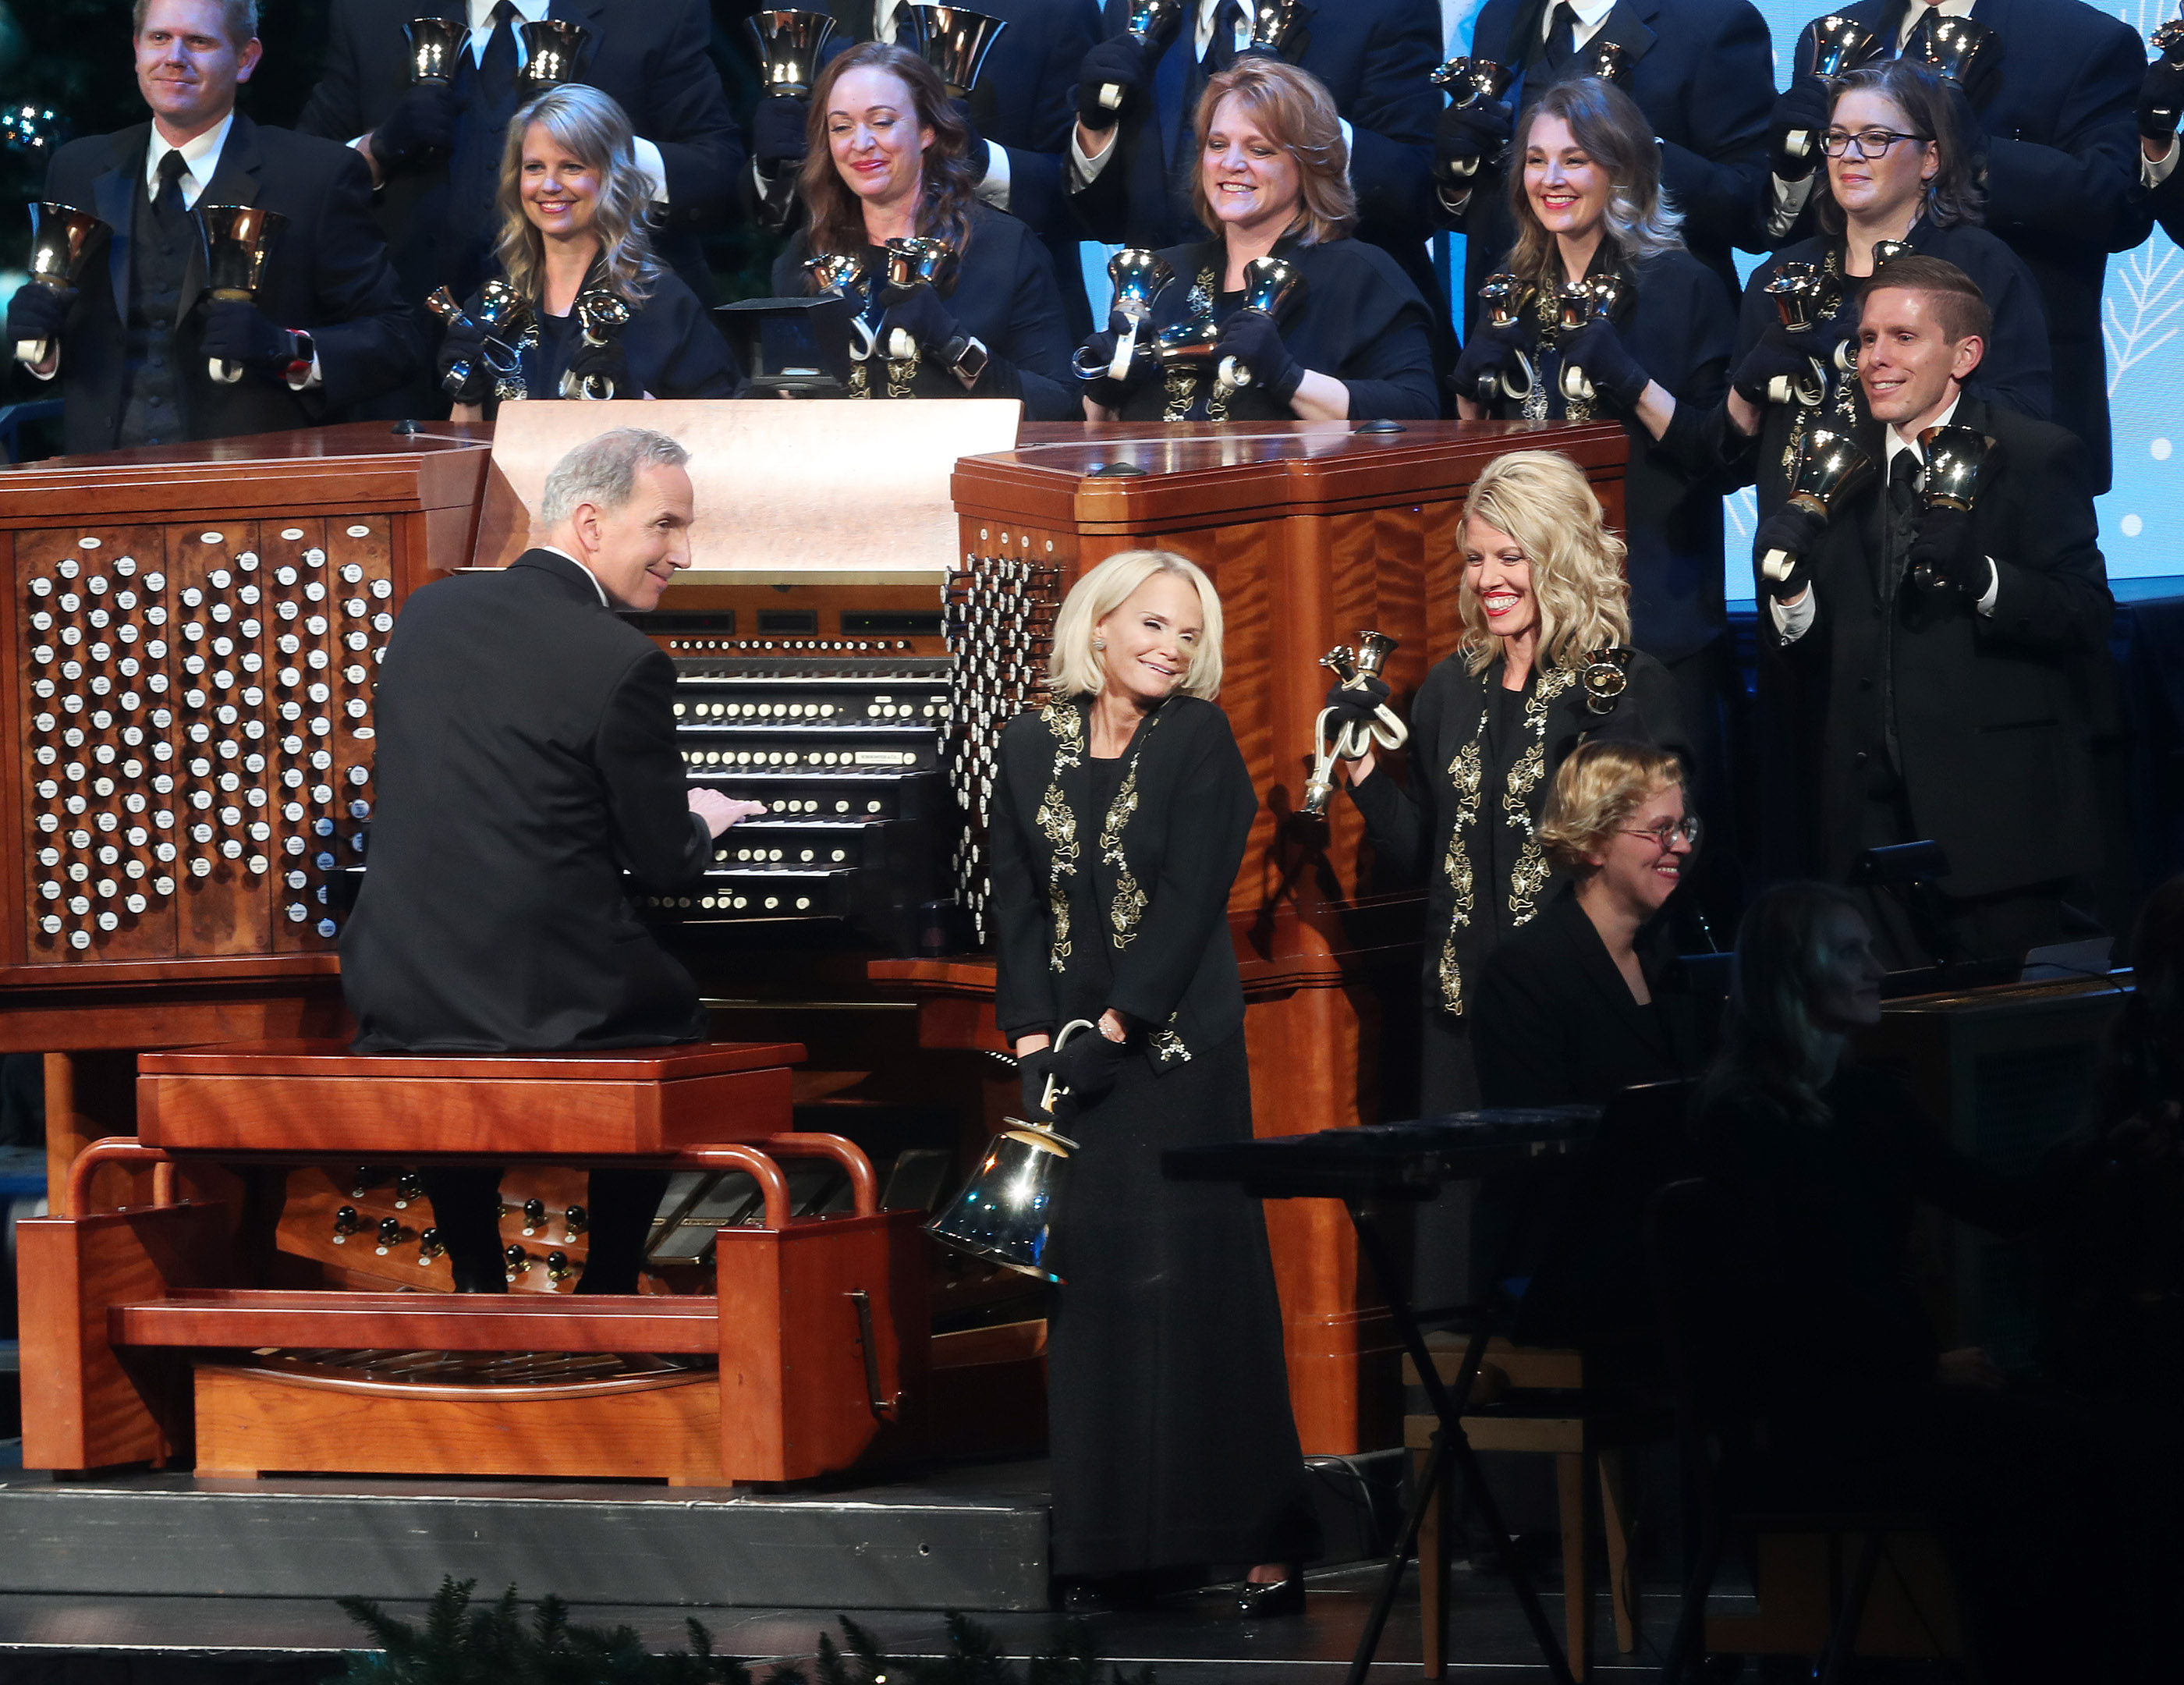 Kristin Chenoweth rings a large bell while playing with organist Richard Elliot and Bells on Temple Square during their opening Christmas concert at the Conference Center in Salt Lake City on Thursday, Dec. 13, 2018.